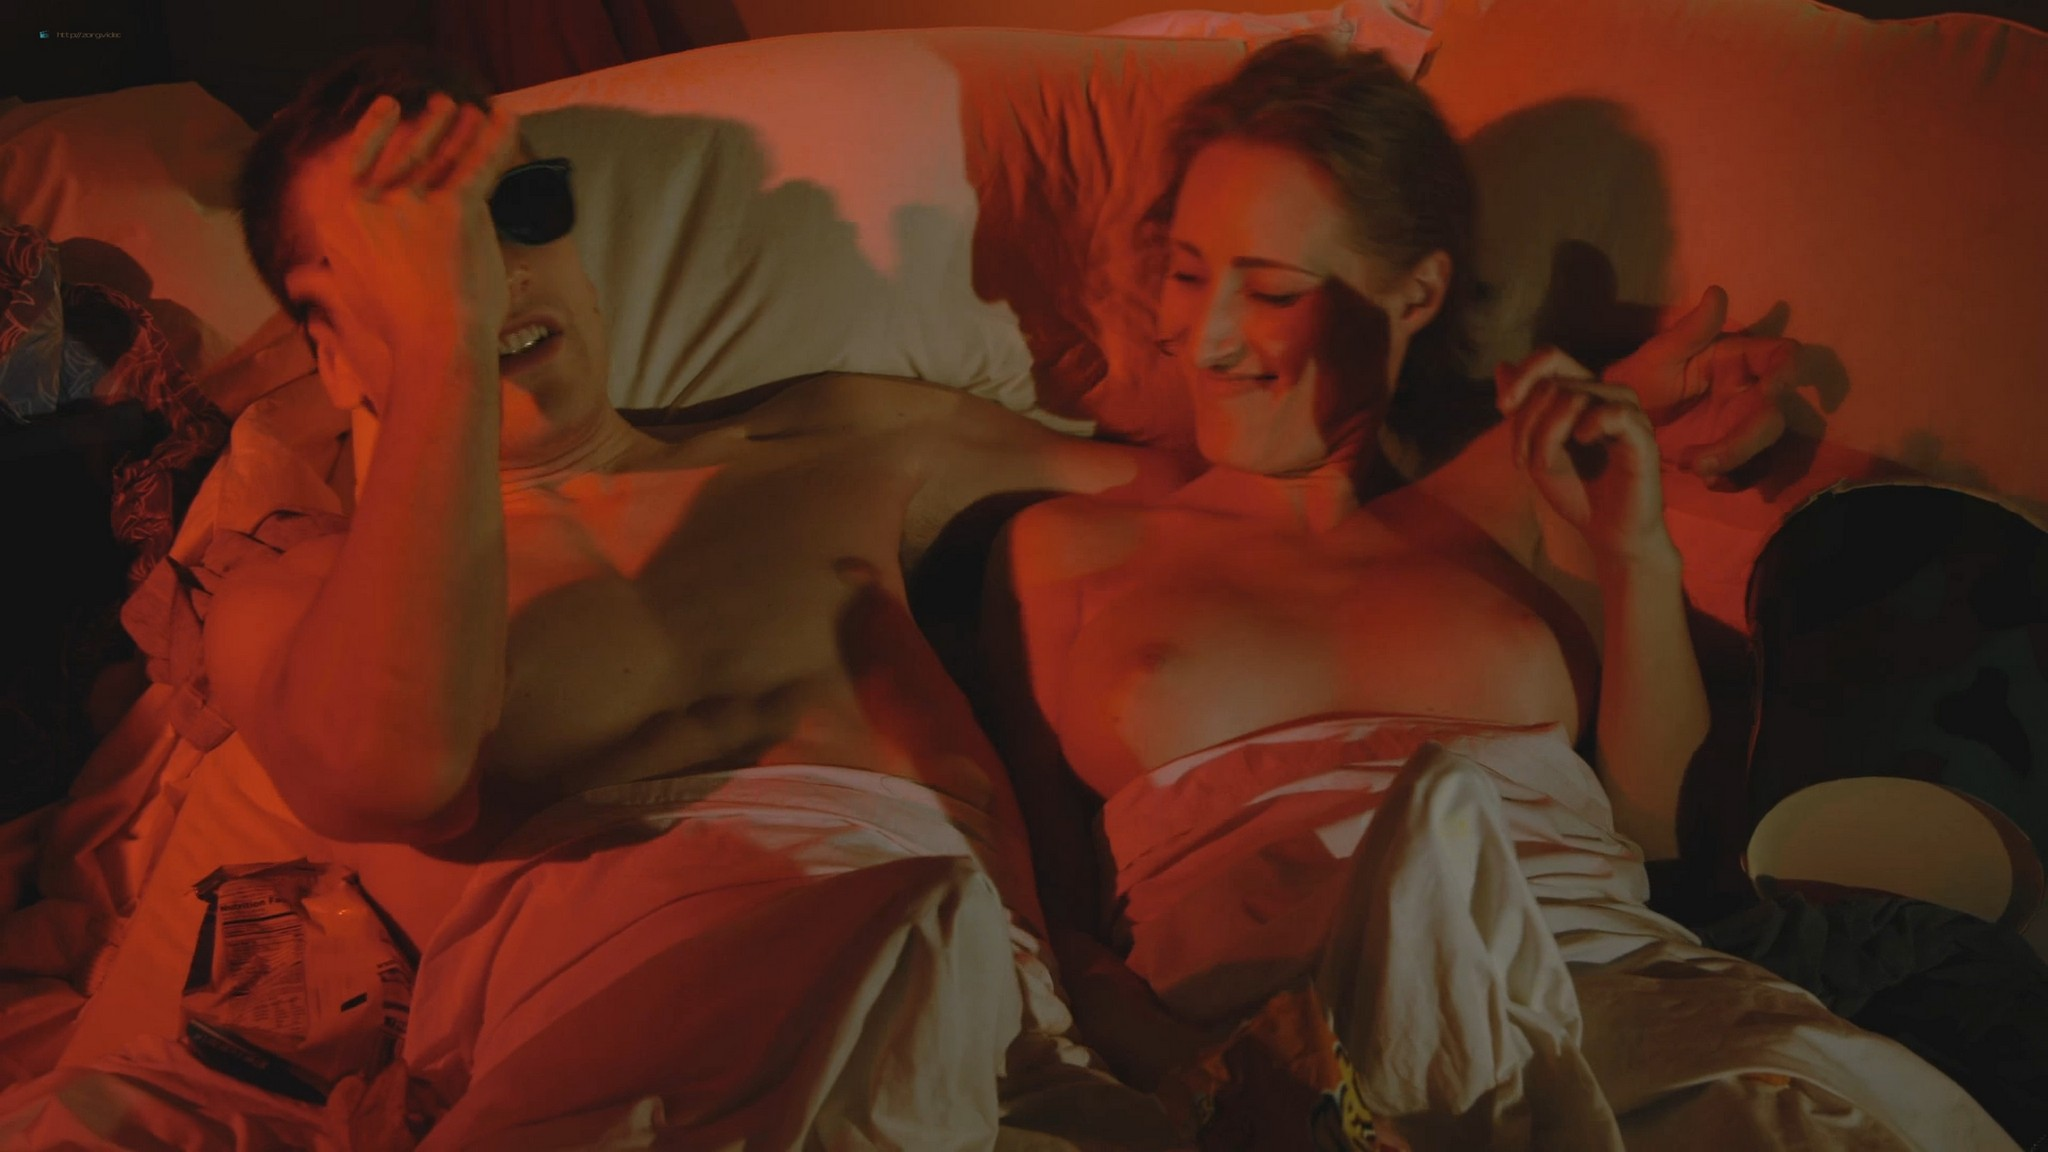 Asta Paredes nude sex Catherine Corcoran and others nude full frontal - Return to Return to Nuke 'Em High Aka Vol. 2 (2017) HD 1080p BluRay (5)